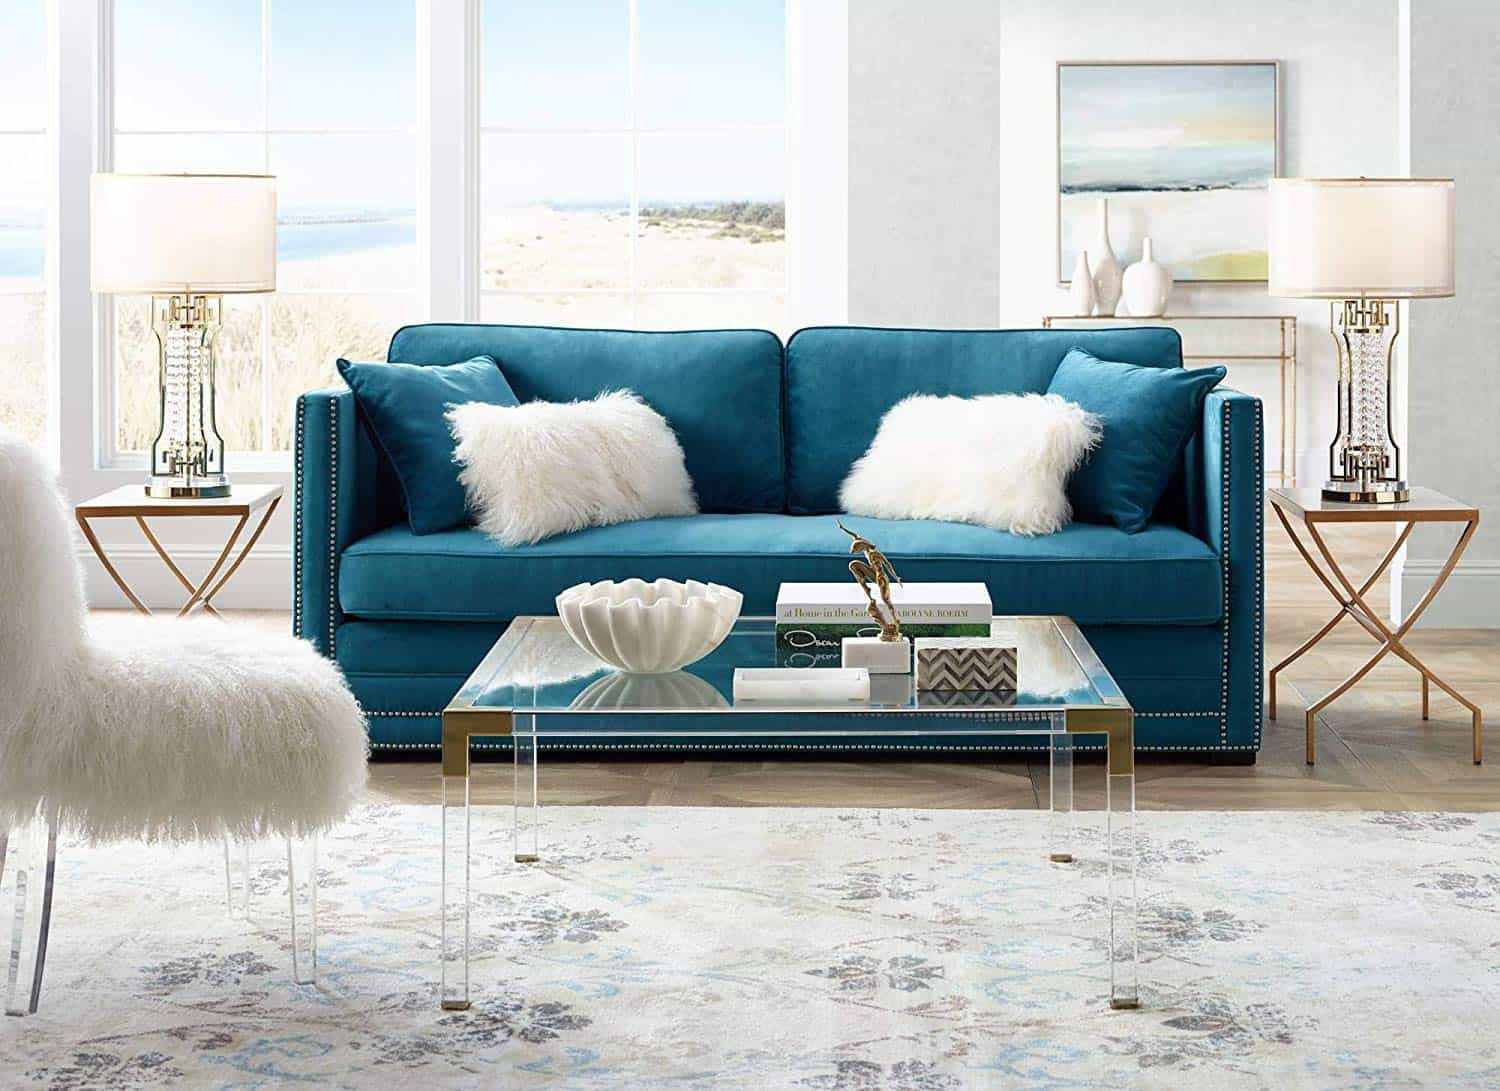 Chic Acrylic Coffee Tables For A Elegant Living Room